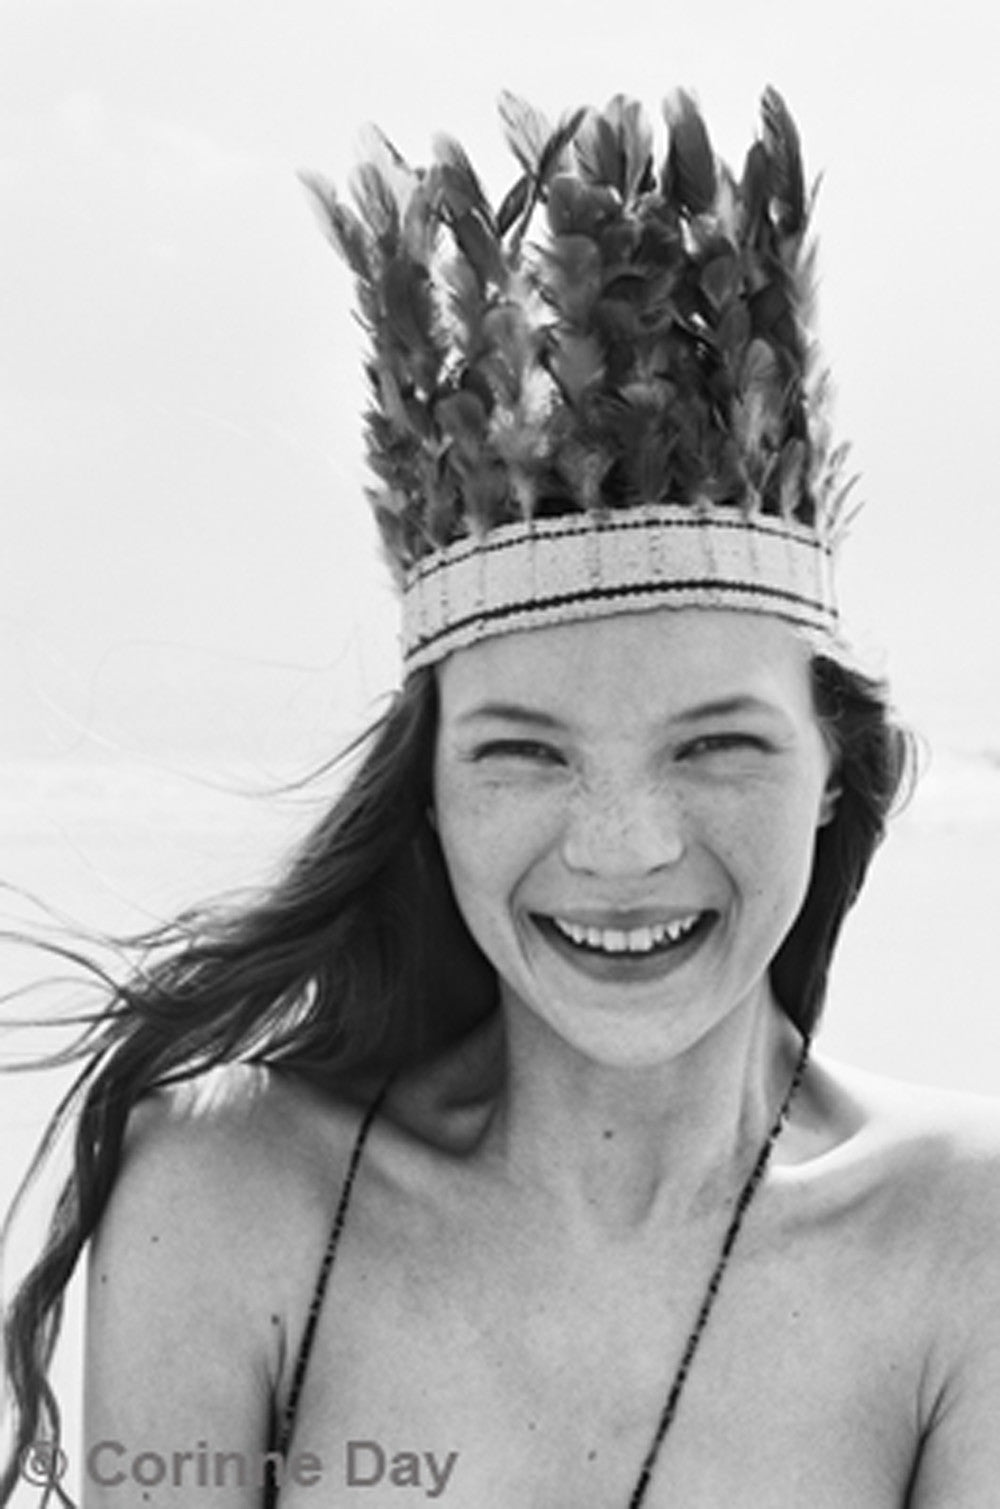 Iconic Kate Moss shoot on Camber Sands